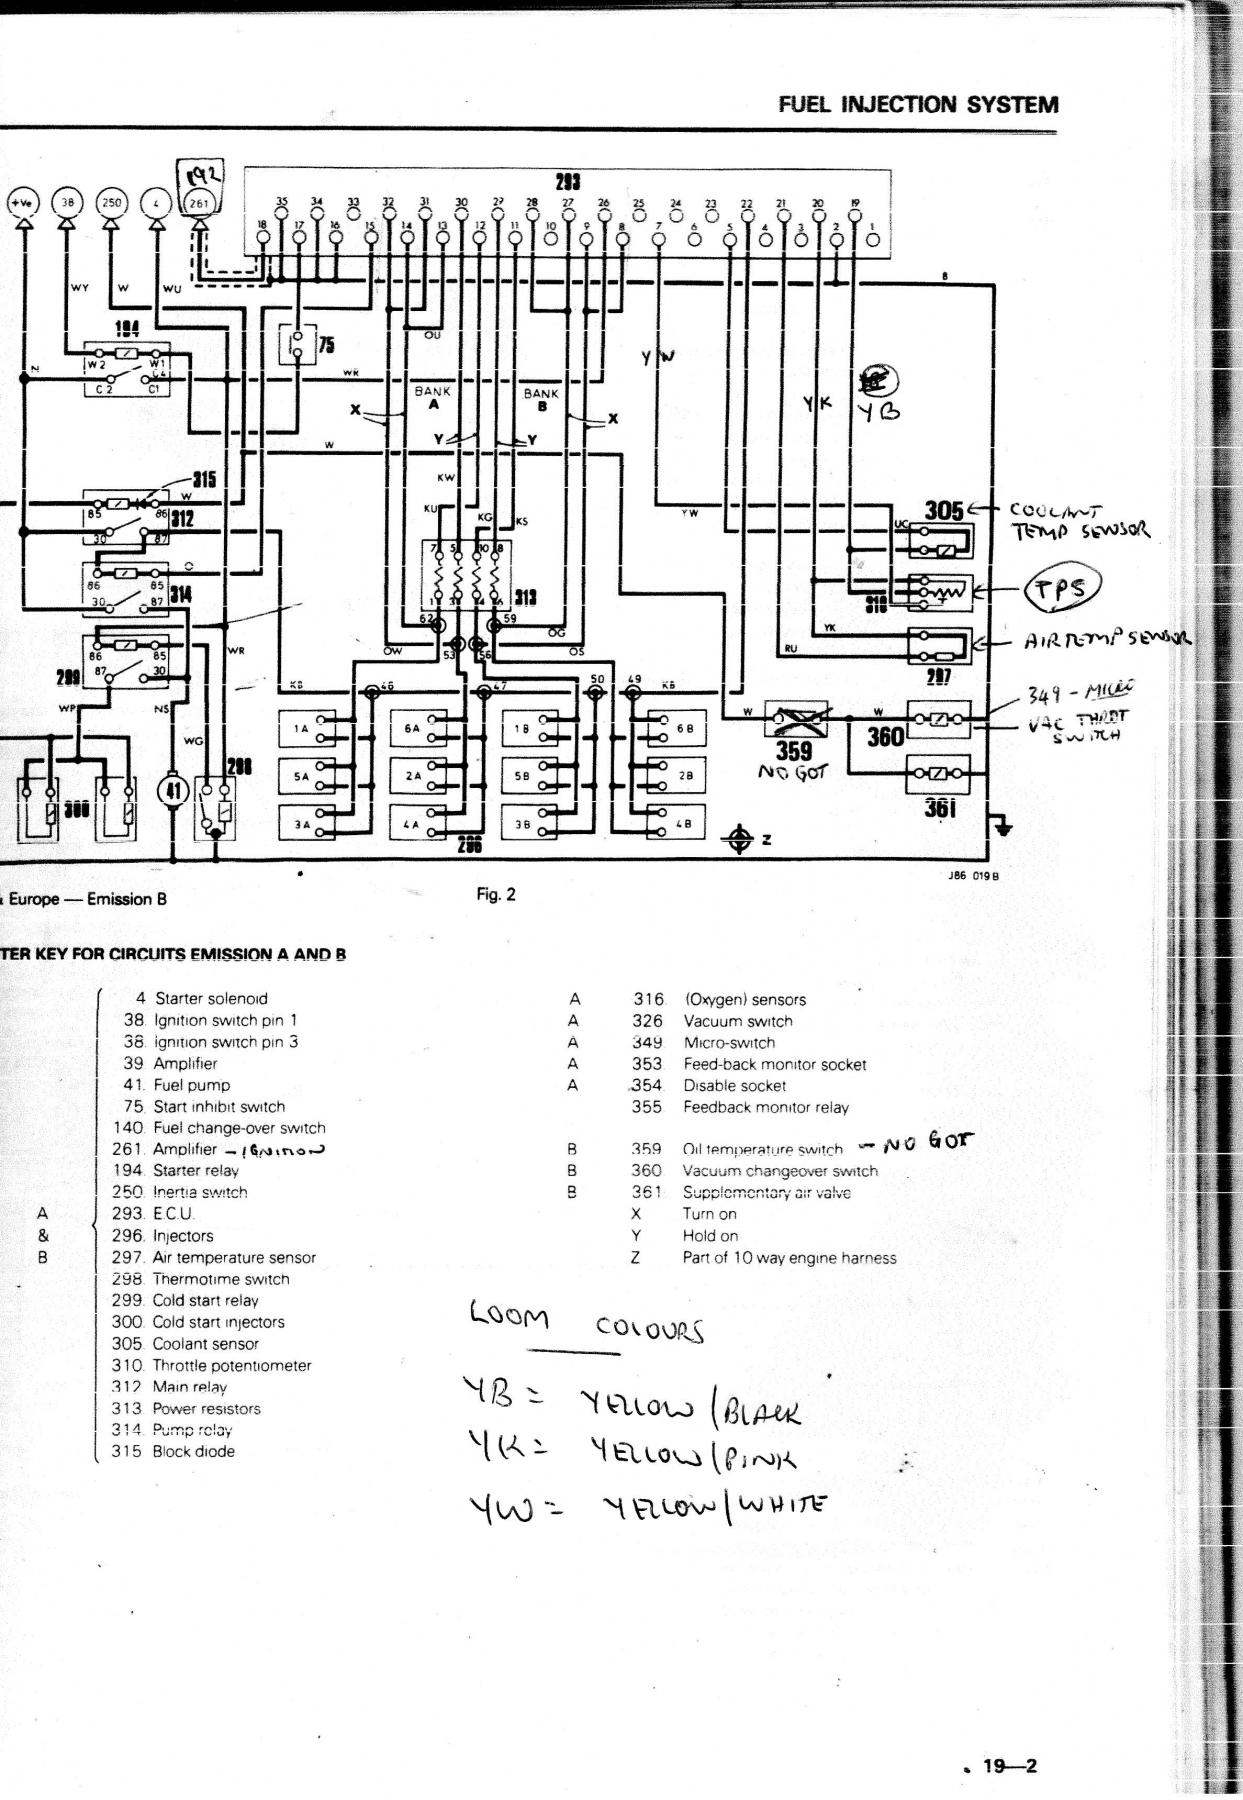 Jaguar xjs wiring diagram efcaviation com on 1990 jaguar xjs wiring diagram pdf 1990 Subaru Justy Wiring Diagram 2002 Jaguar S Type Engine Diagram